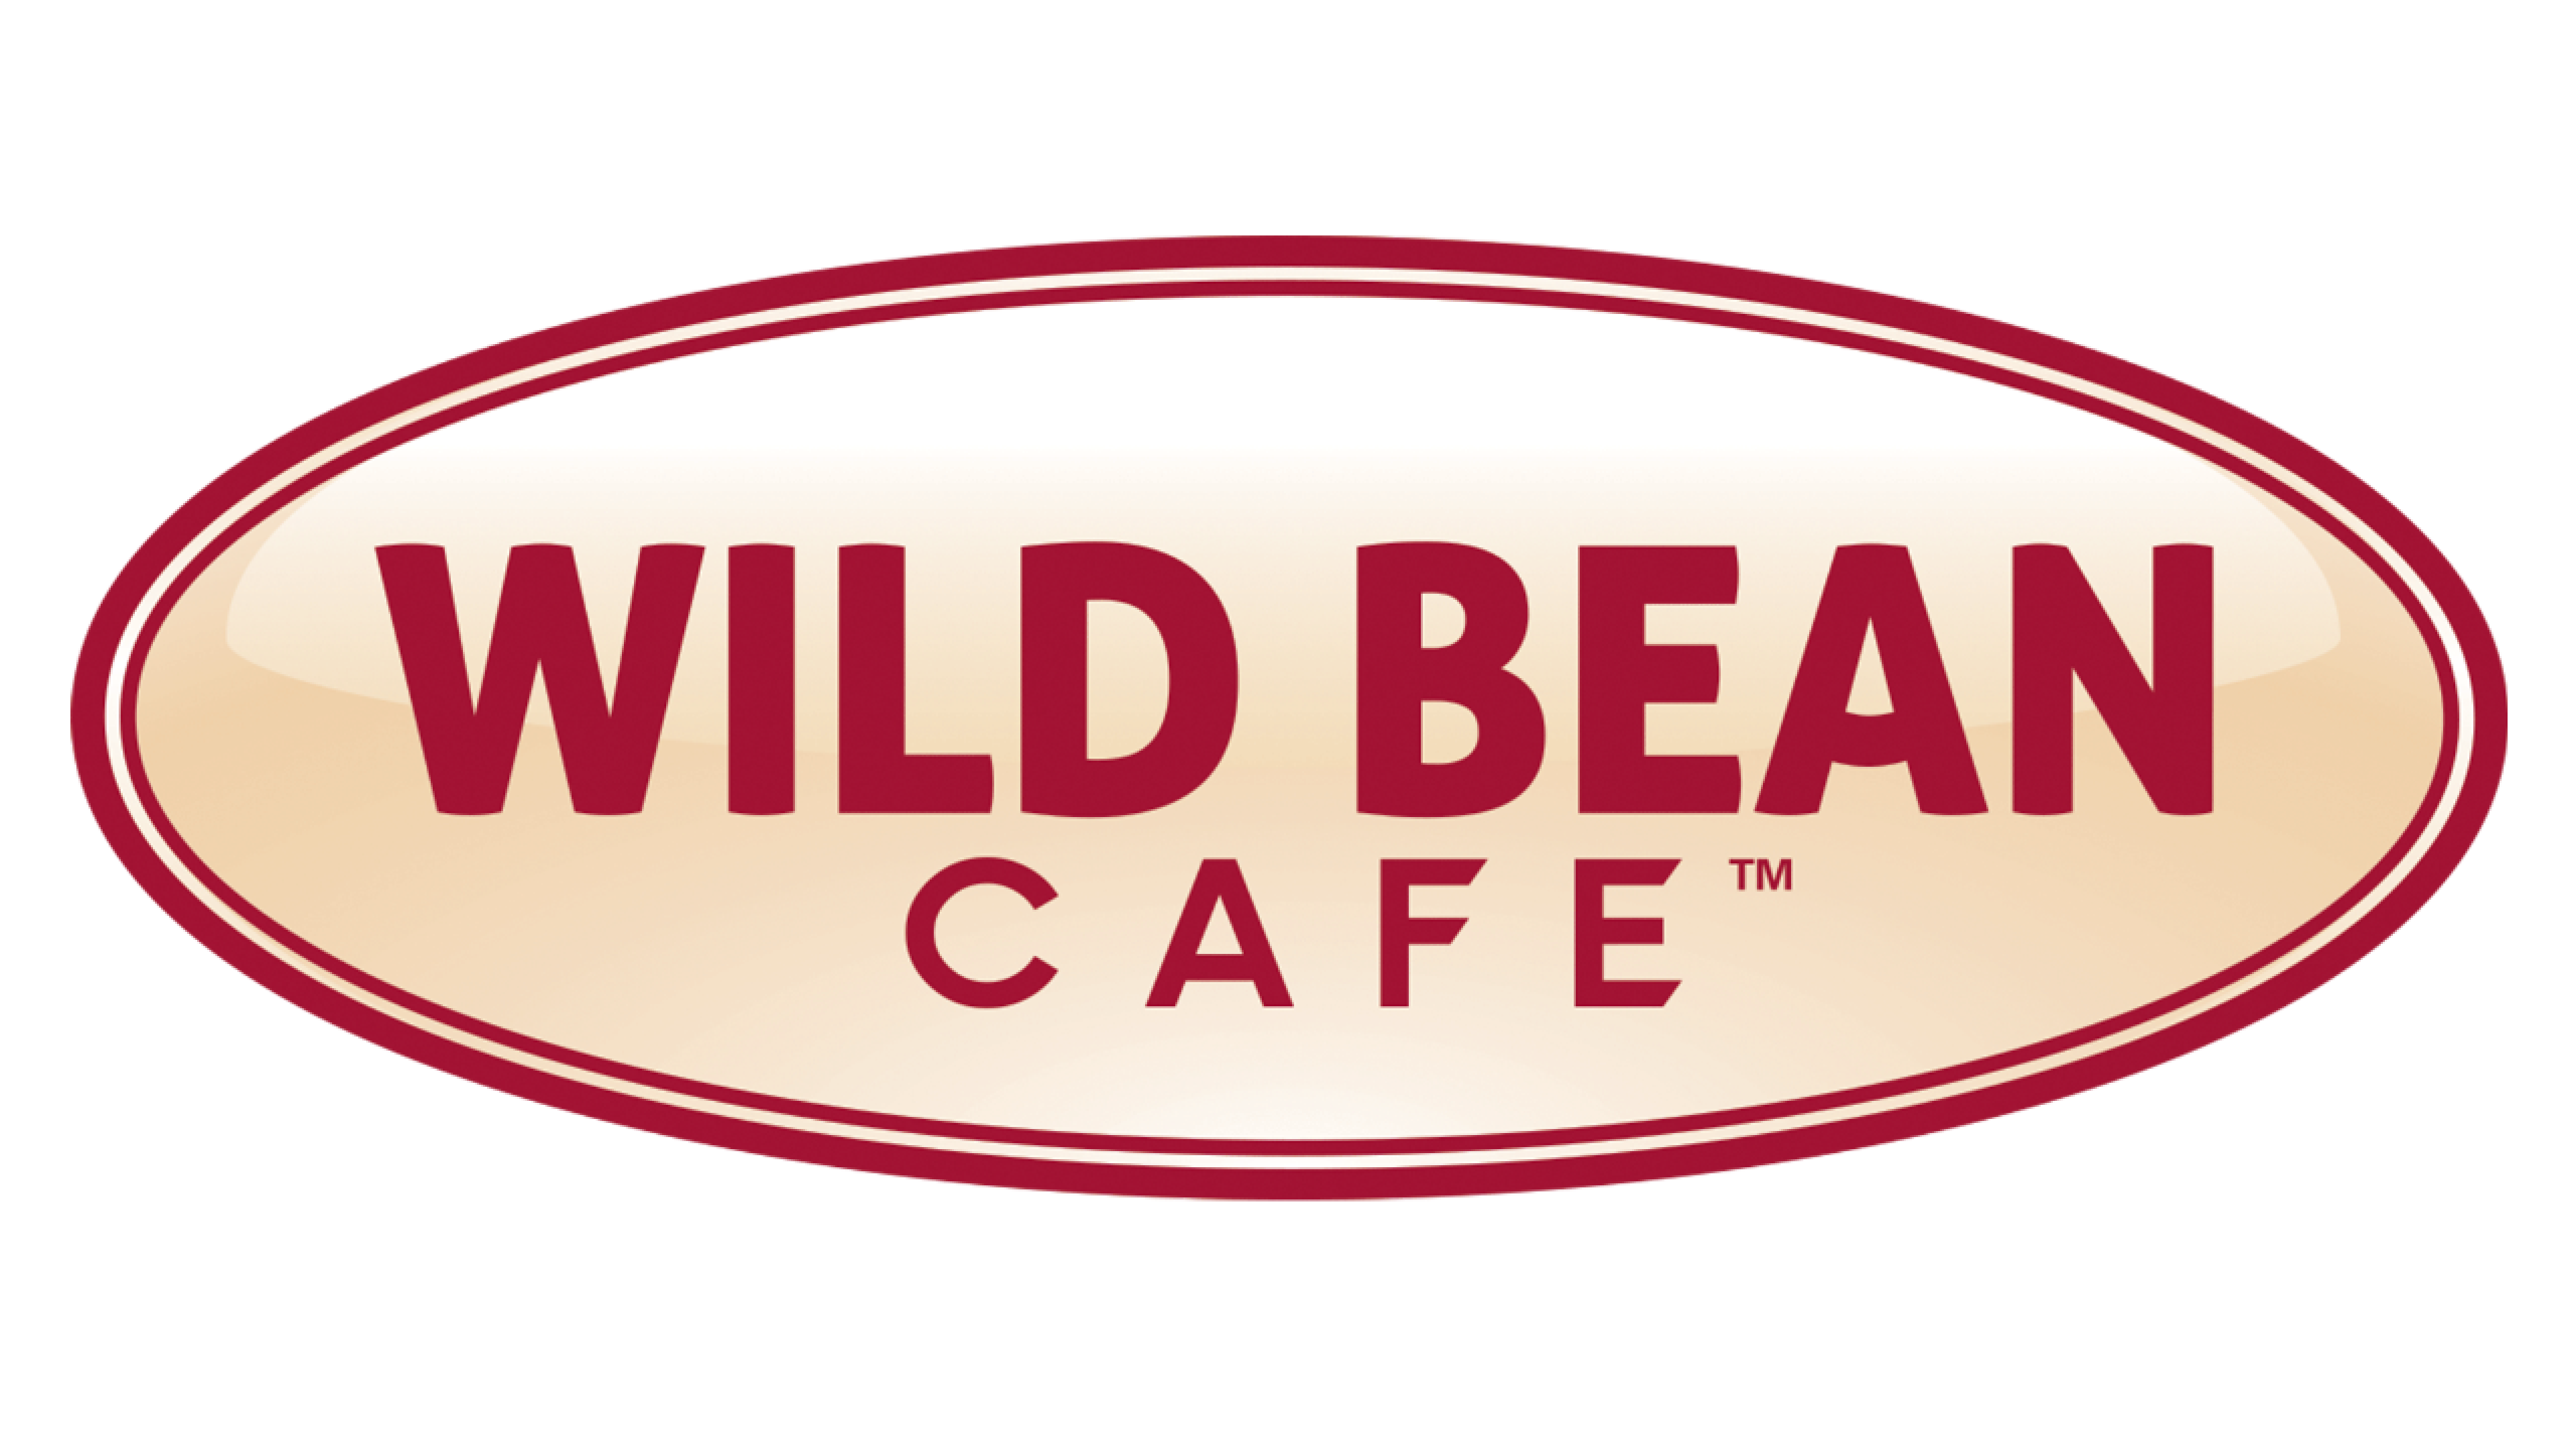 Wild Bean Cafe logo